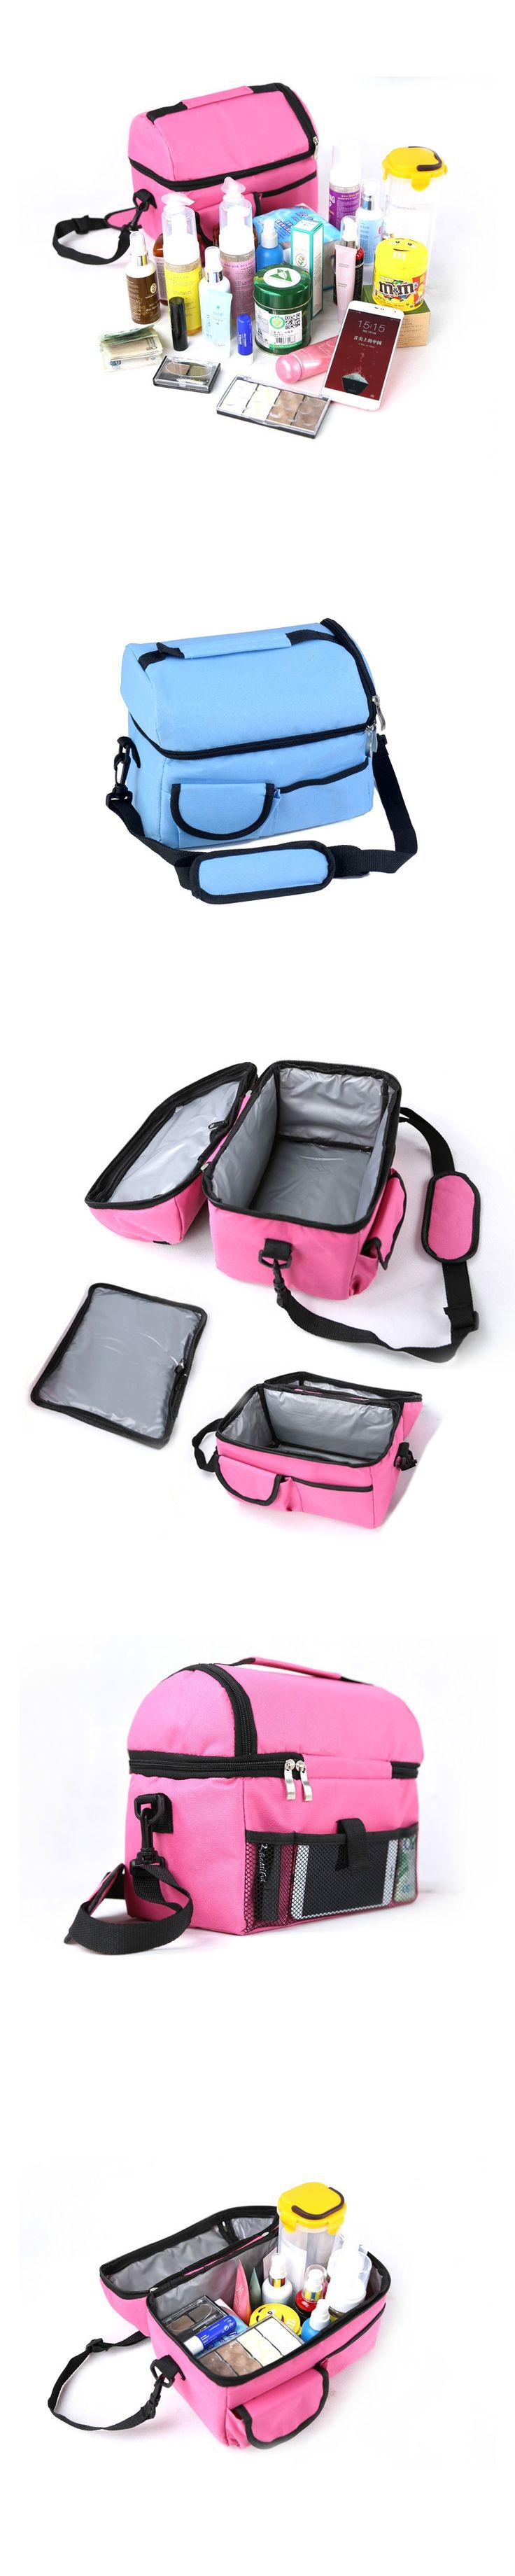 529354 baby thermal bag Mommy Picnic Bag Baby Milk Bottle Insulation Bags Large-capacity Ice Travel Storage Thermal Bottle Bag